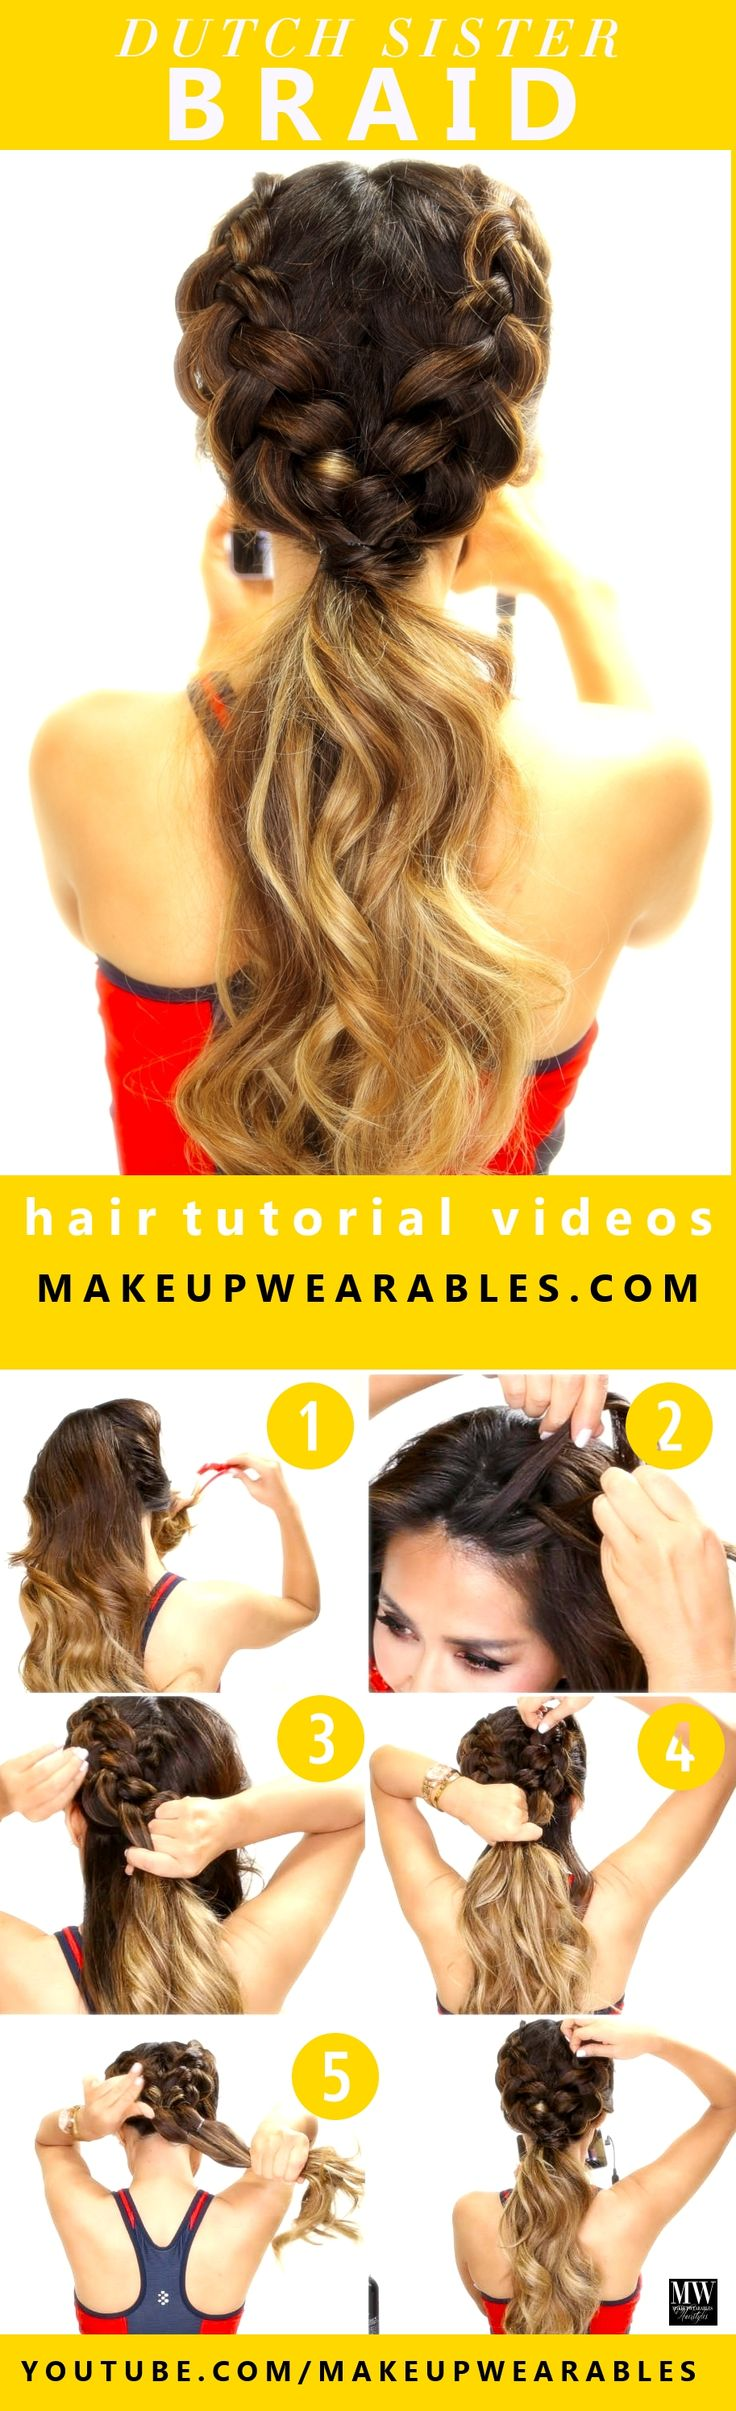 Hair Styles Ideas How To Easy Dutch Braid Workout Hairstyles For